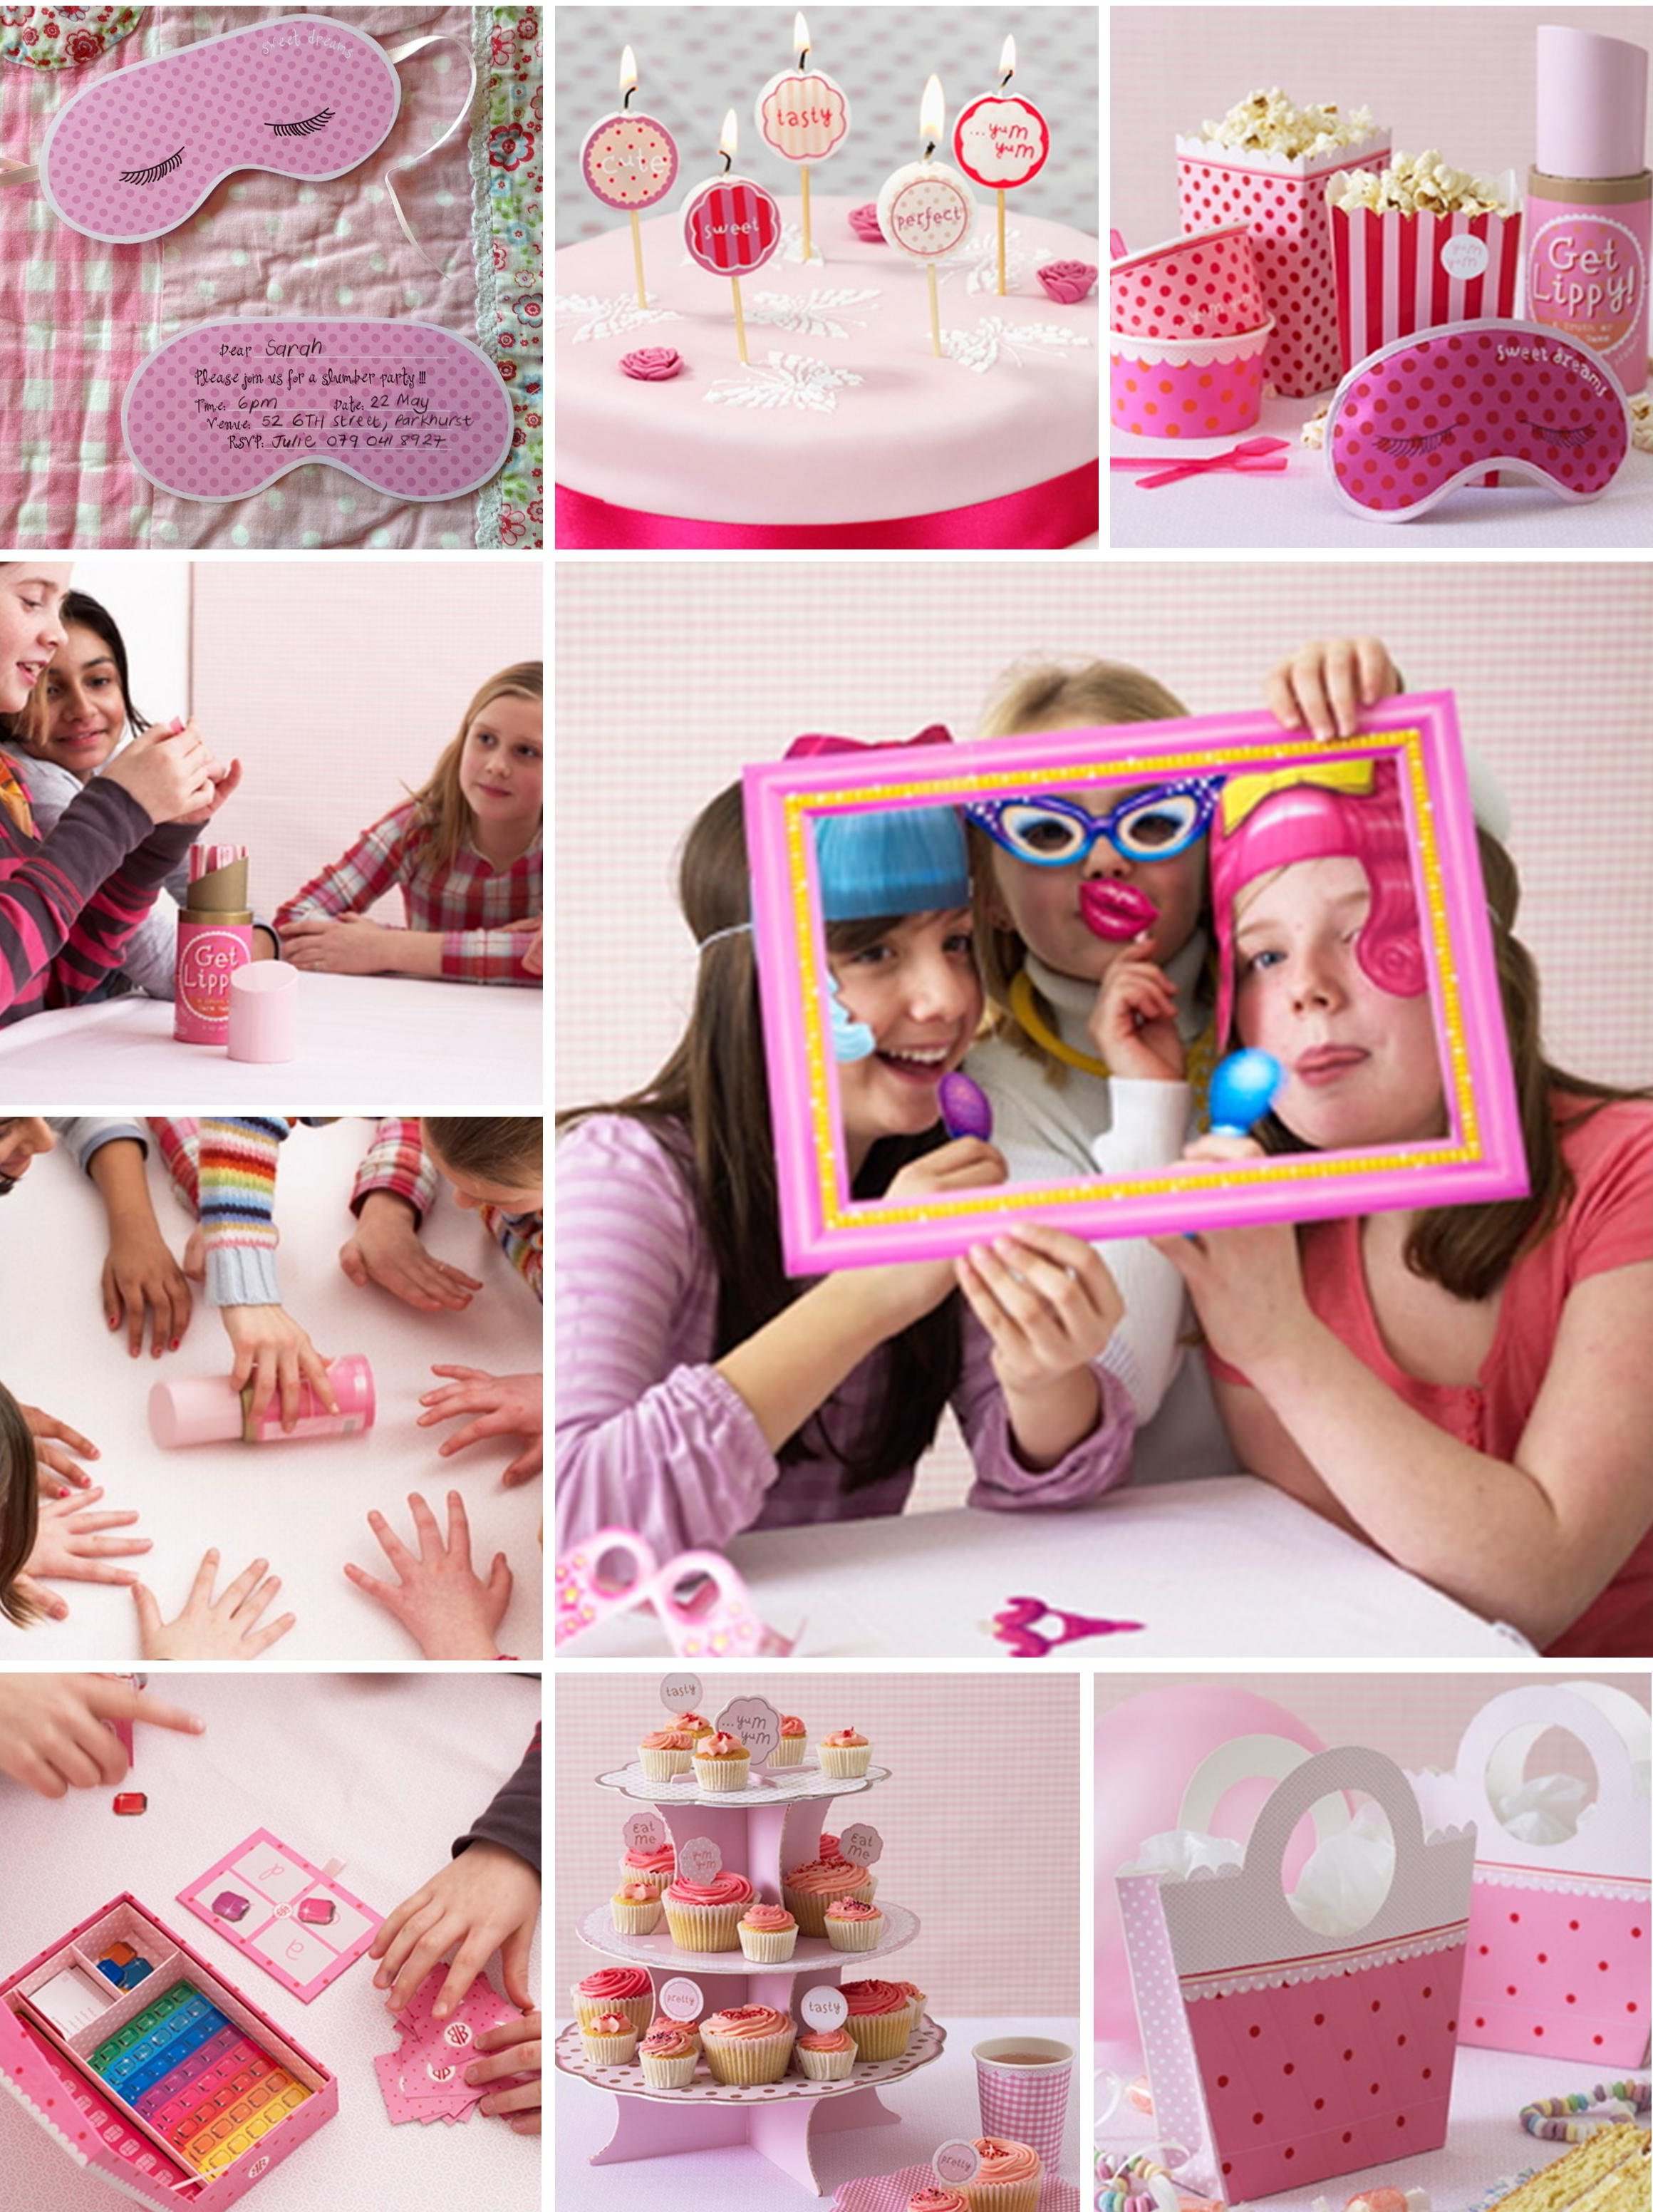 Pictures of Slumber Party Decorations http://www.nestdesigns.co.za/girls-just-wanna-have-fun/